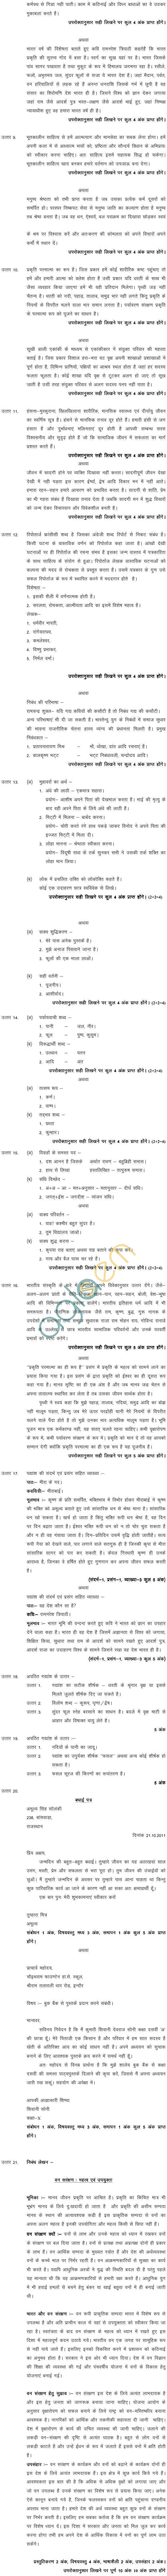 MP Board Class X Hindi General Model Questions & Answers - Set 4